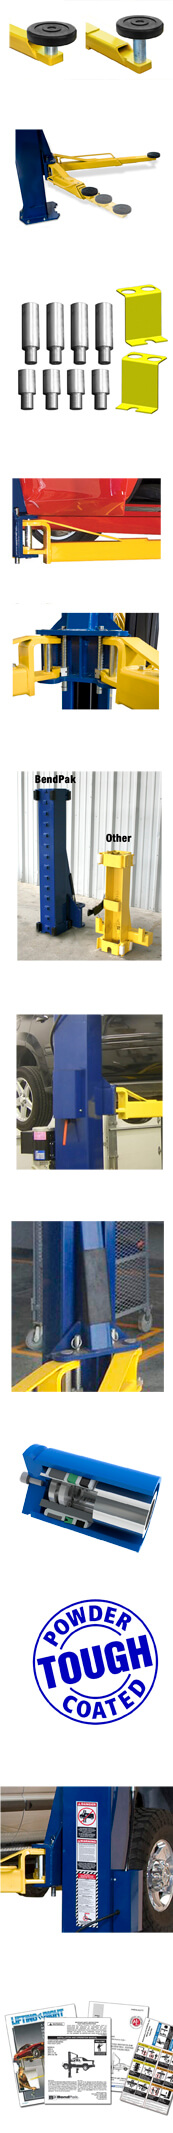 BendPak-XPR_Series_Car-Lift-Features.jpg